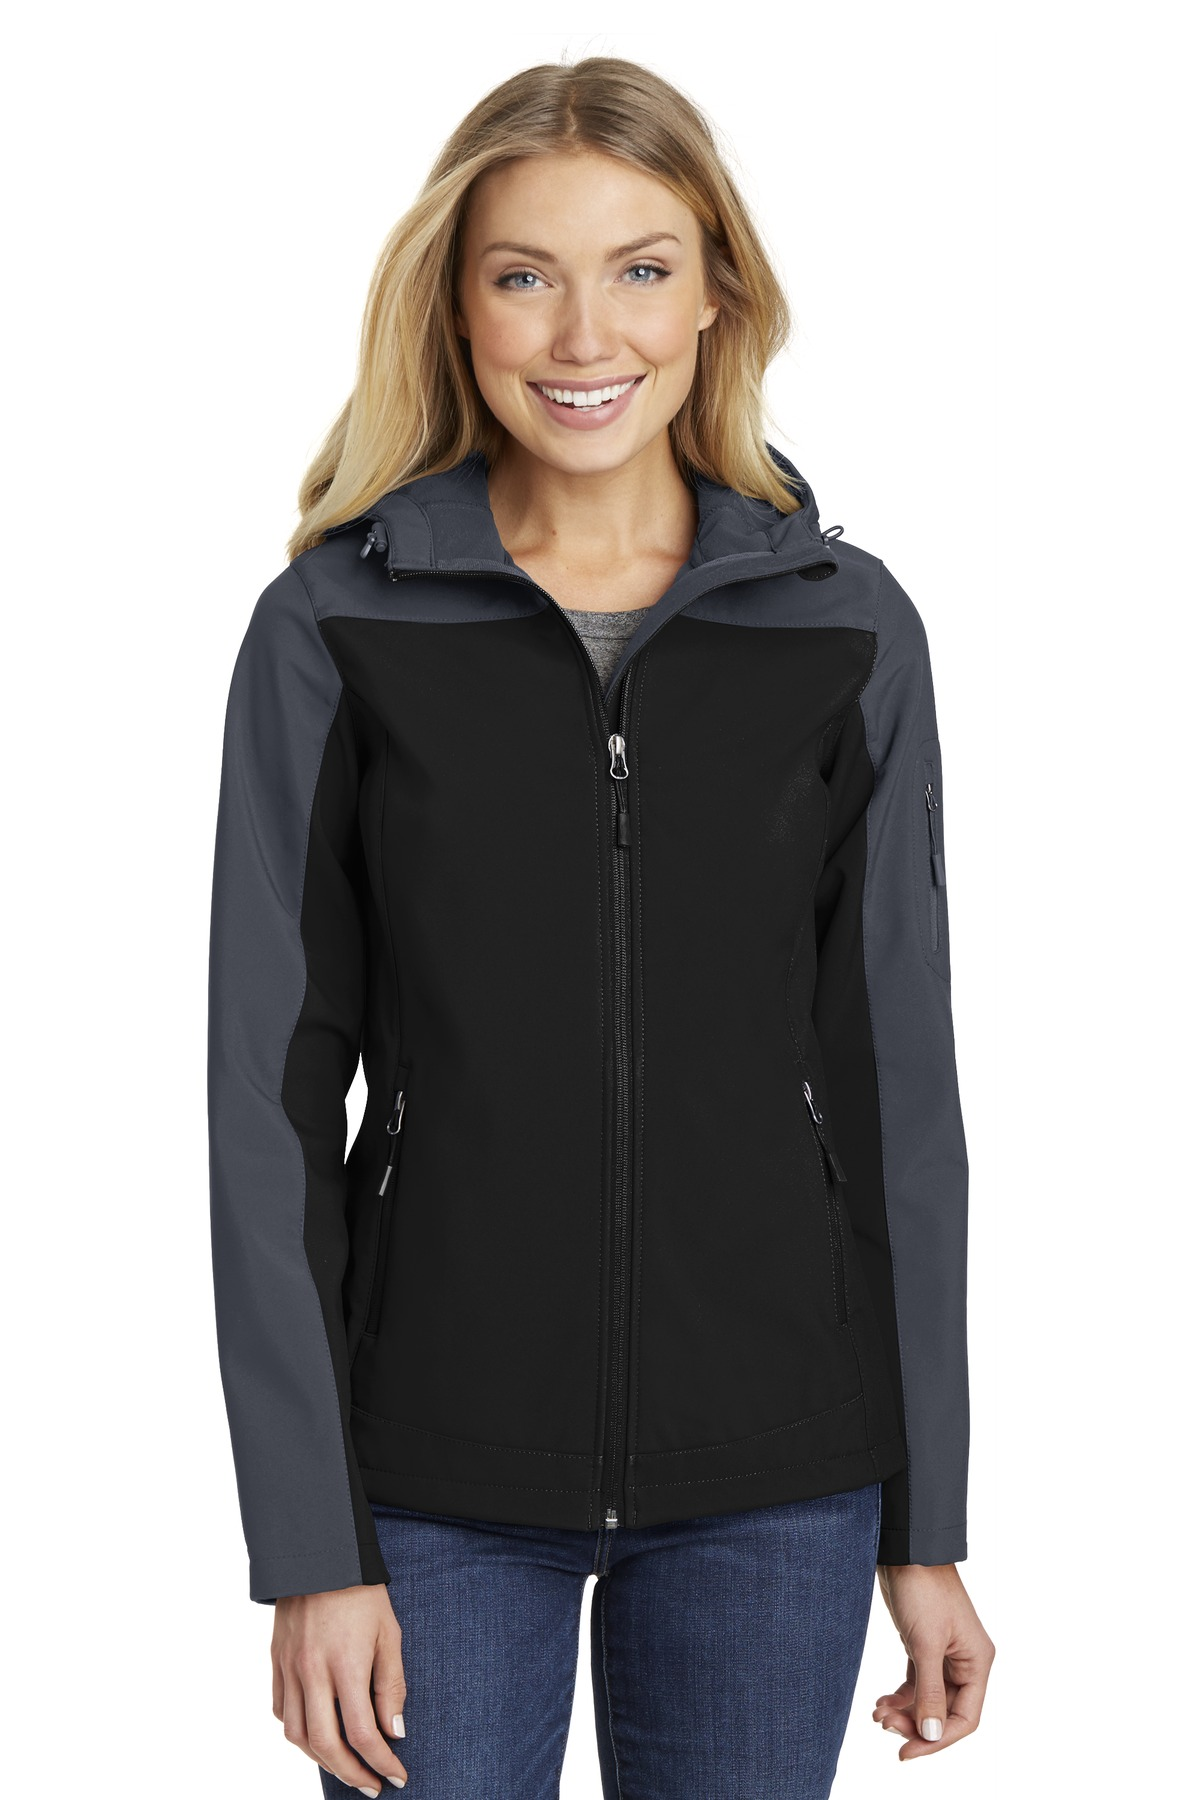 Port Authority ®  Ladies Hooded Core Soft Shell Jacket. L335 - Black/ Battleship Grey